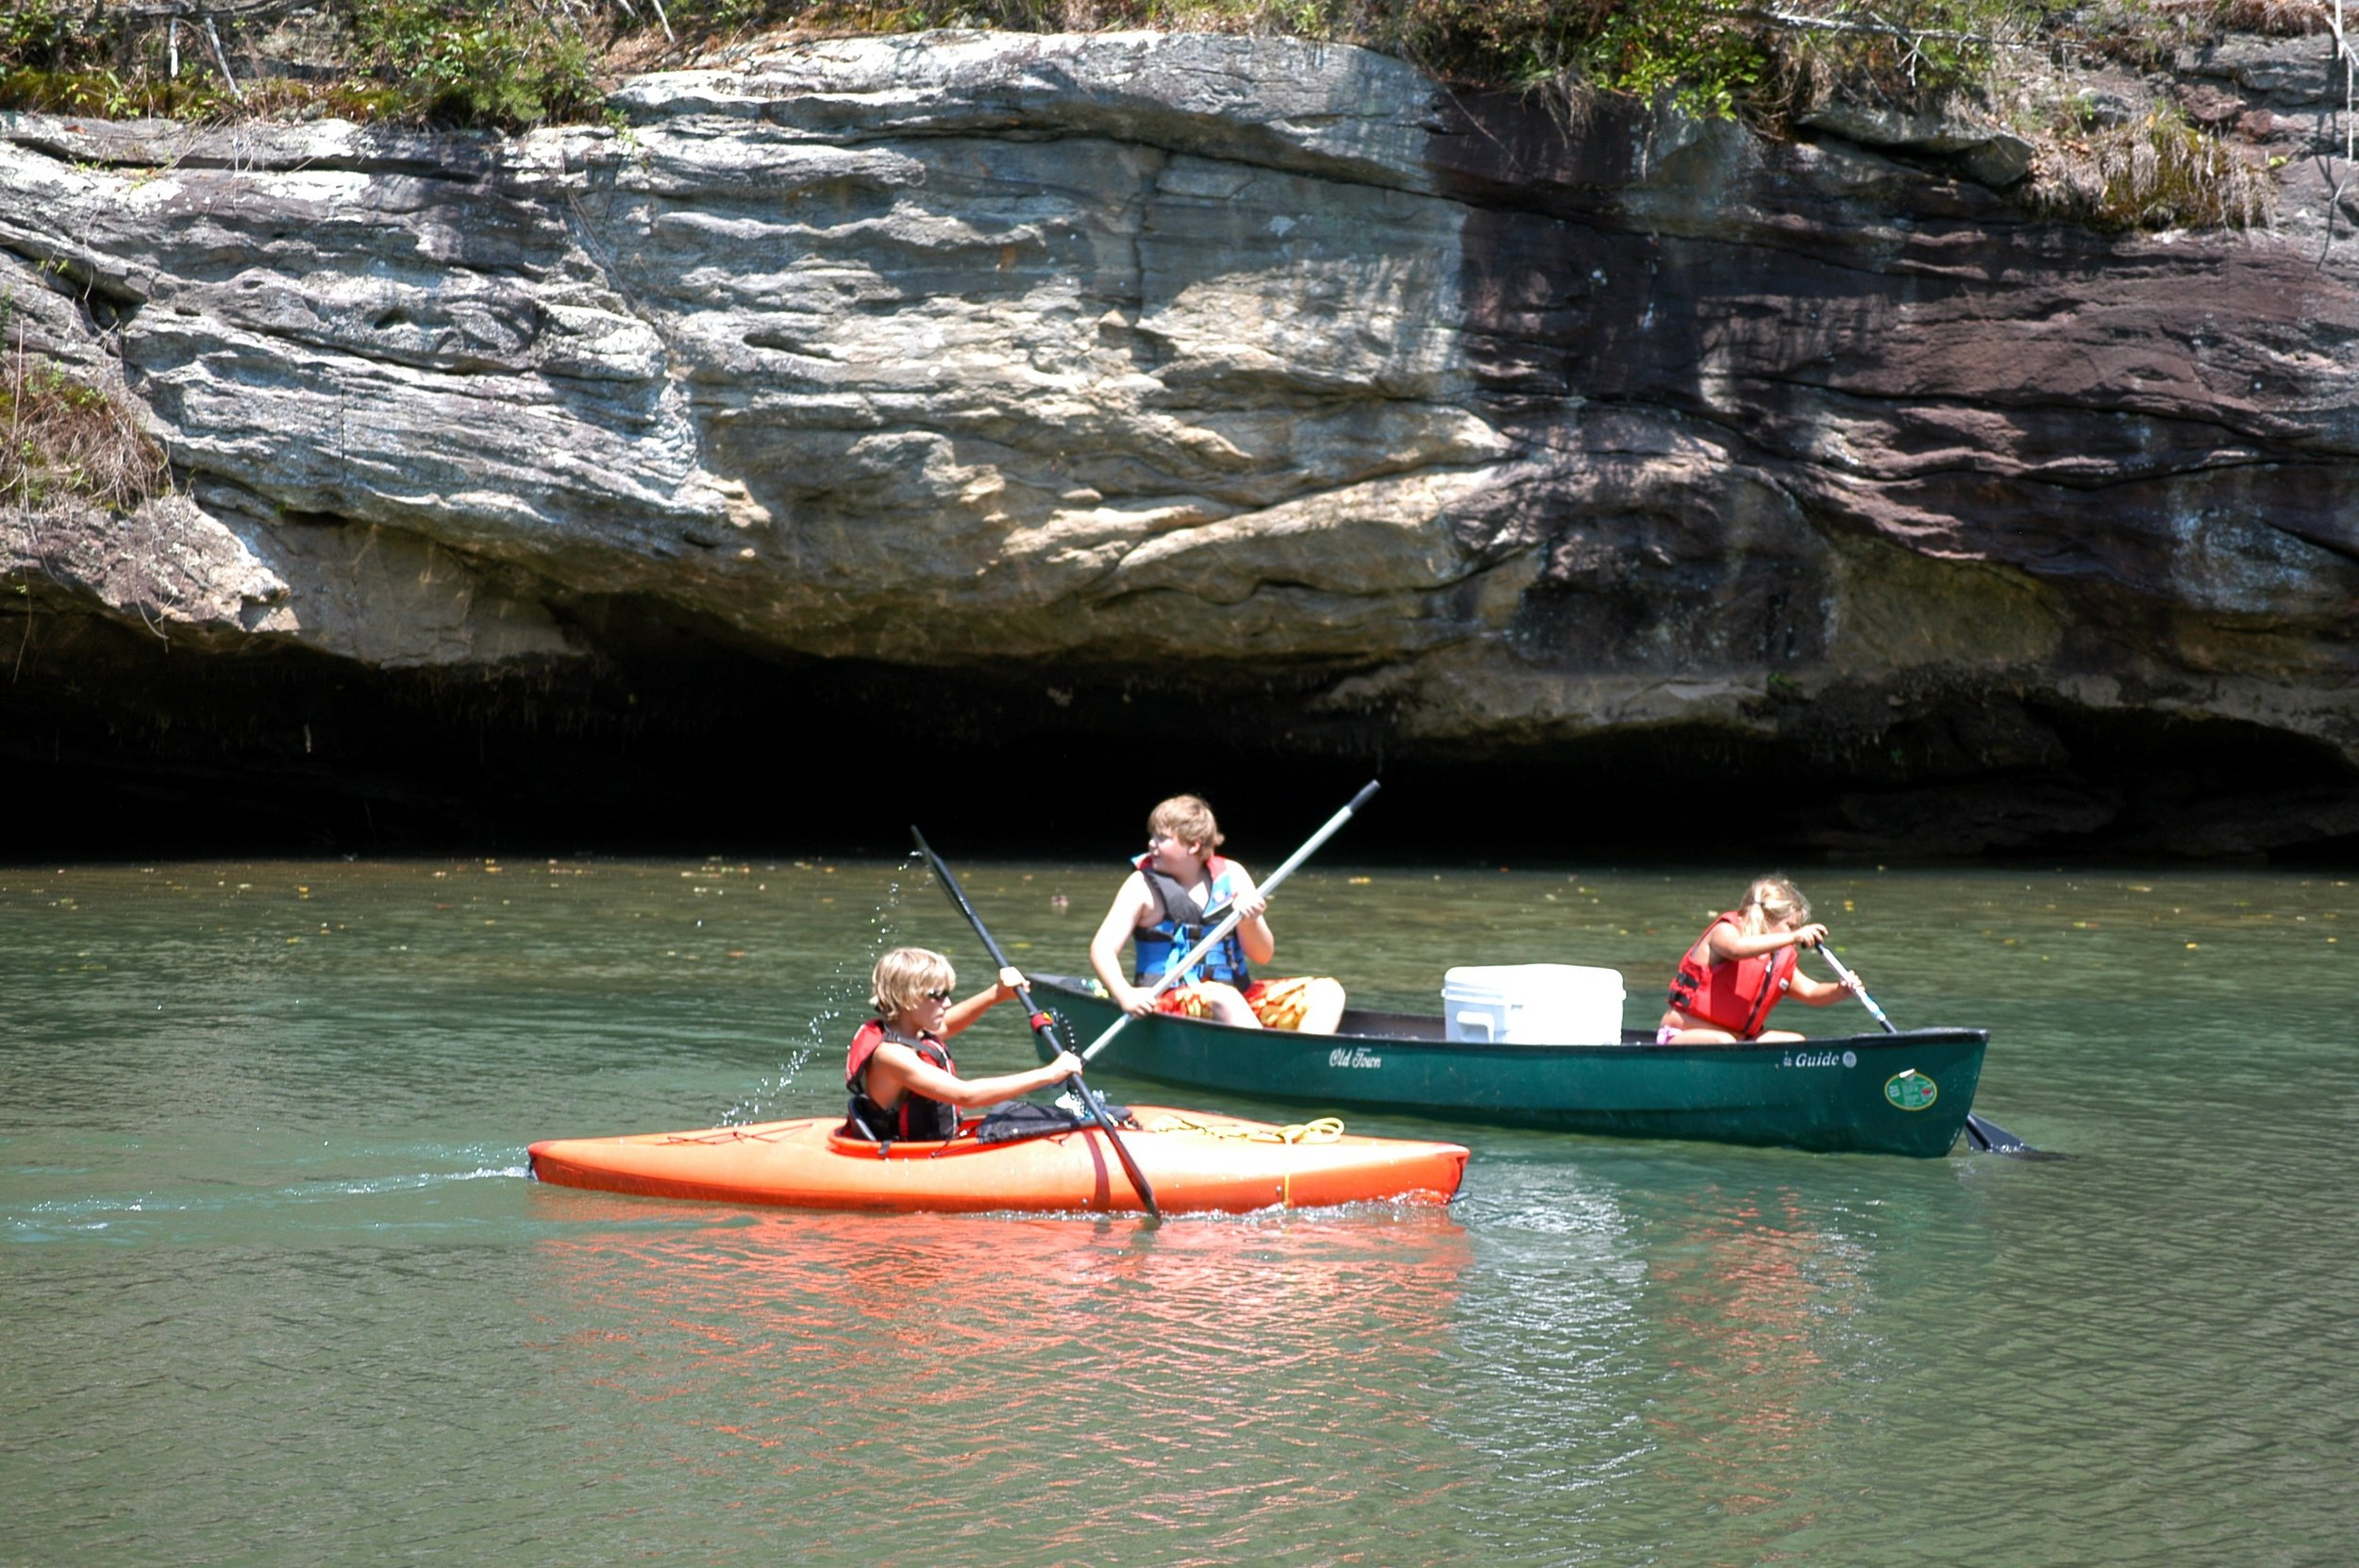 Gentle water makes CRC the perfect place for family kayaking and canoeing.